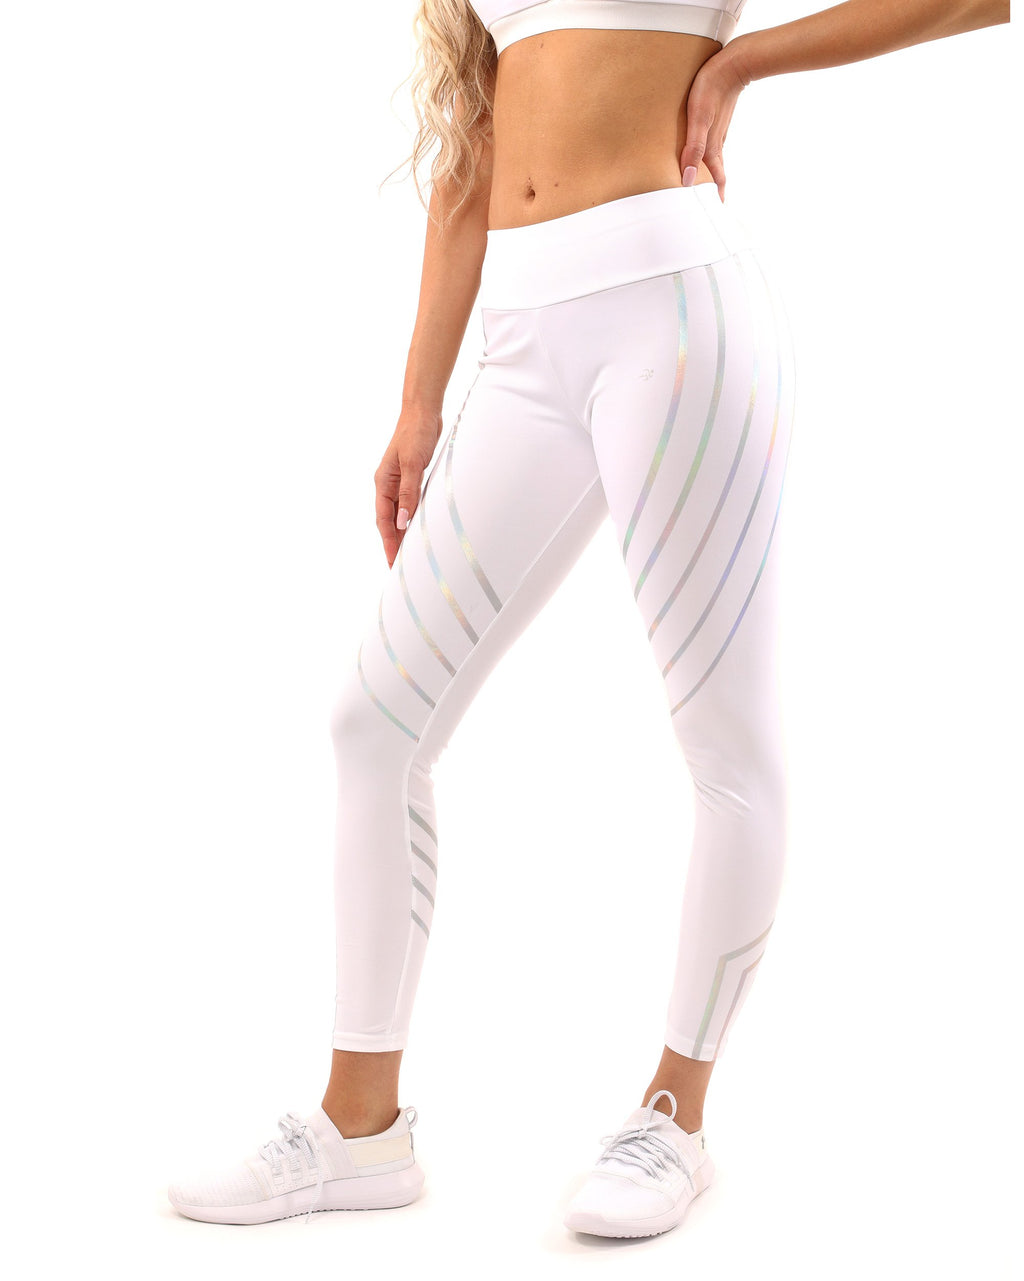 Laguna Leggings - White - KATANA FASHION BOUTIQUE